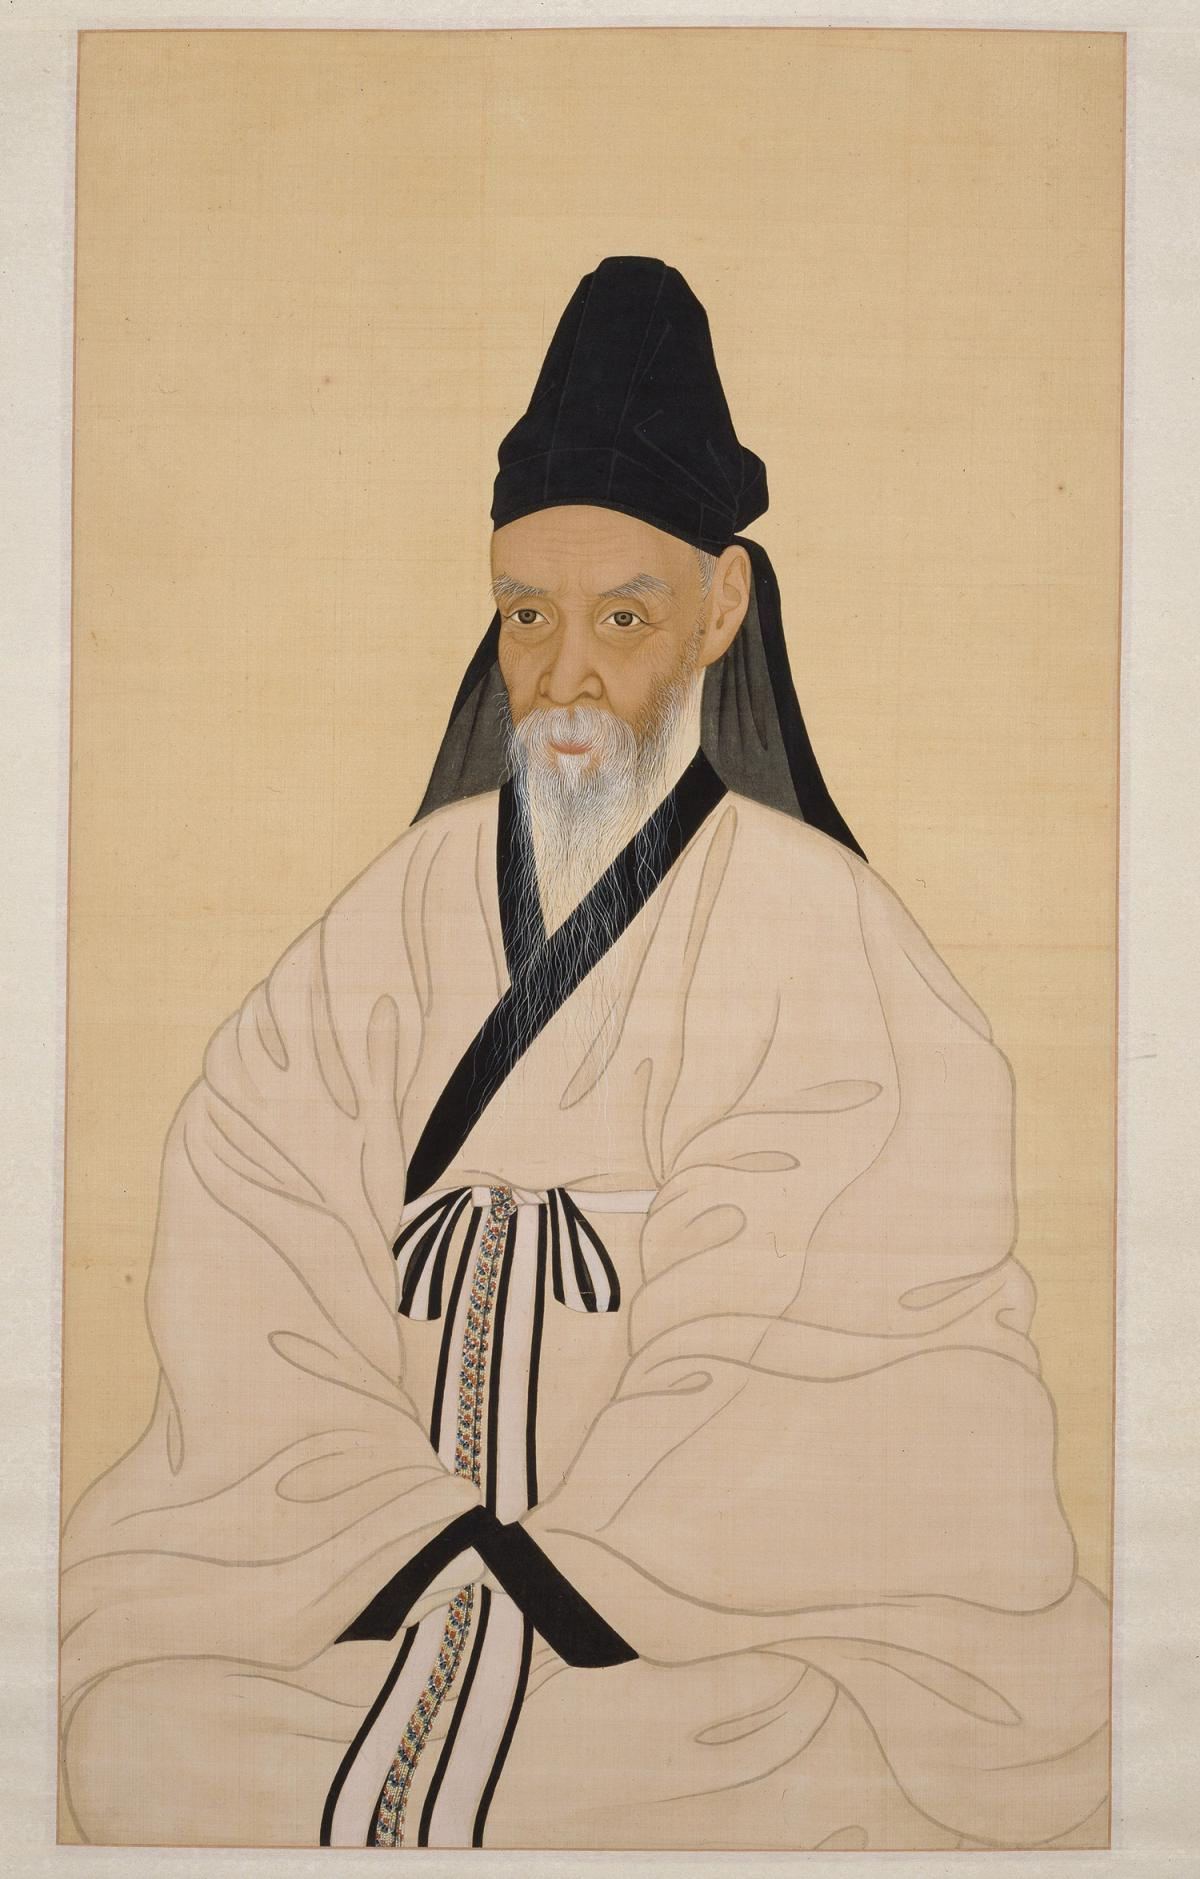 Yi Jae in a white robe, seated with hands folded in his lap, wearing a black cap